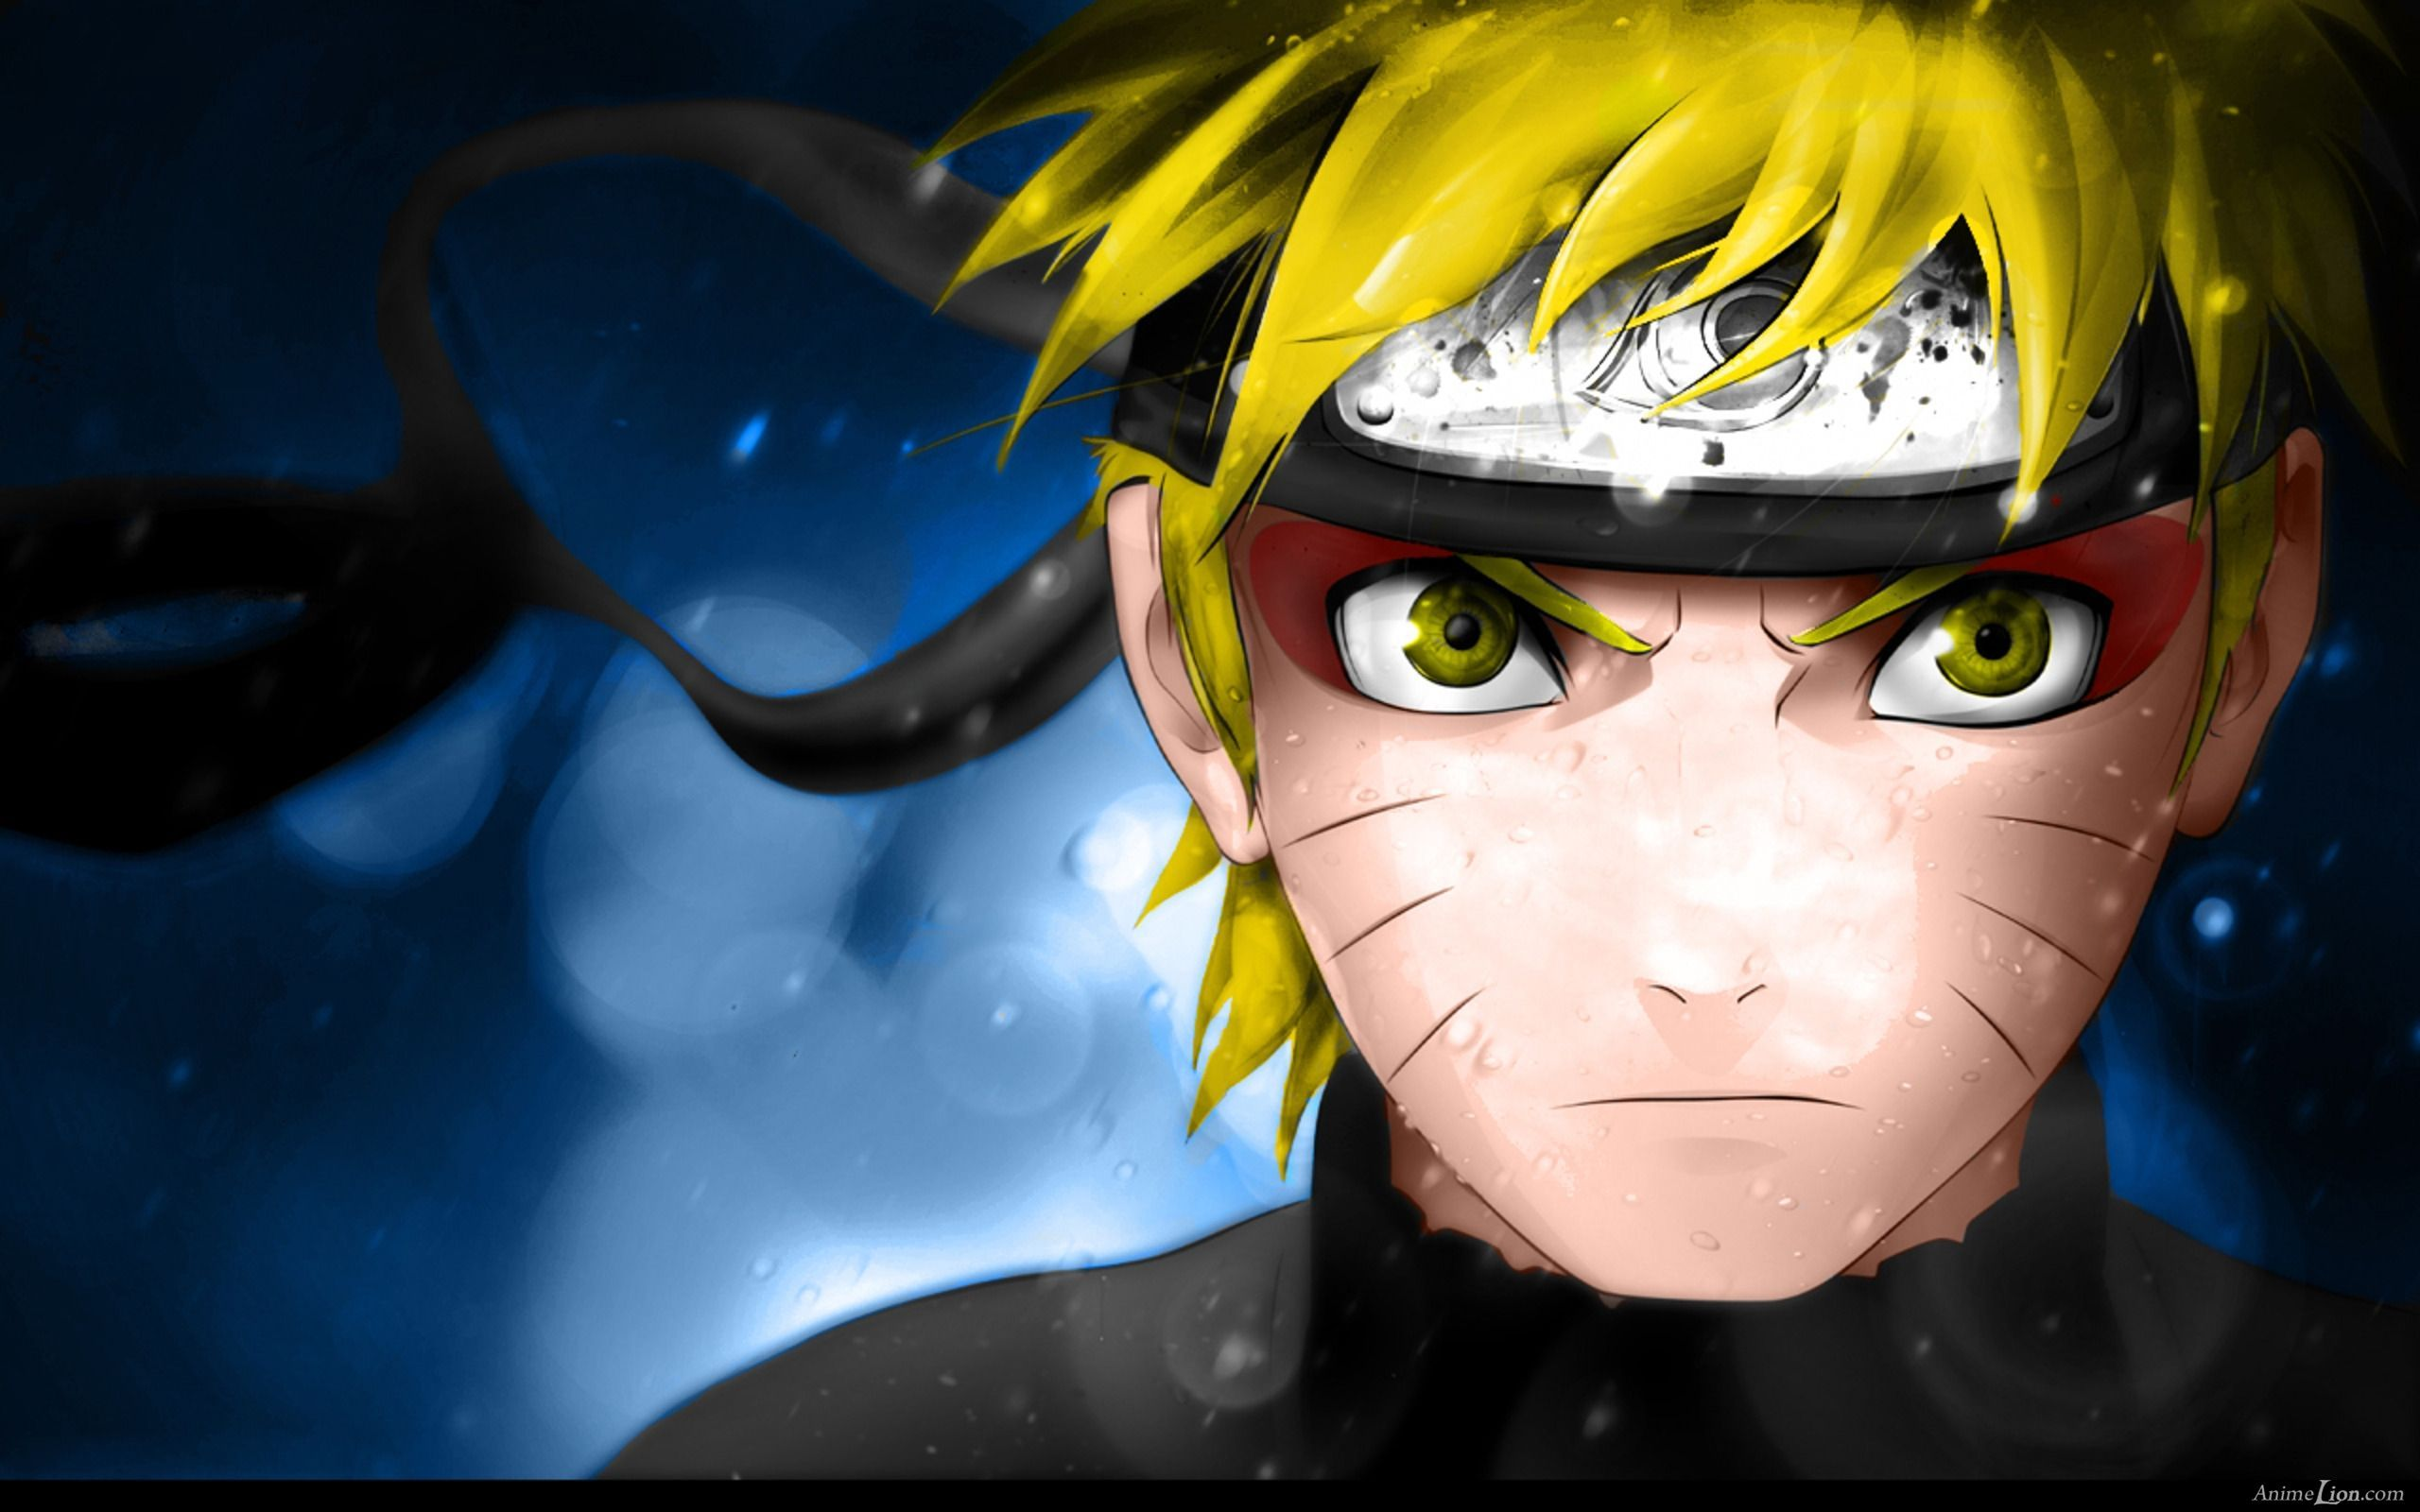 Naruto Shippuden Chapter 444: The filling stage ends on January 14 ...